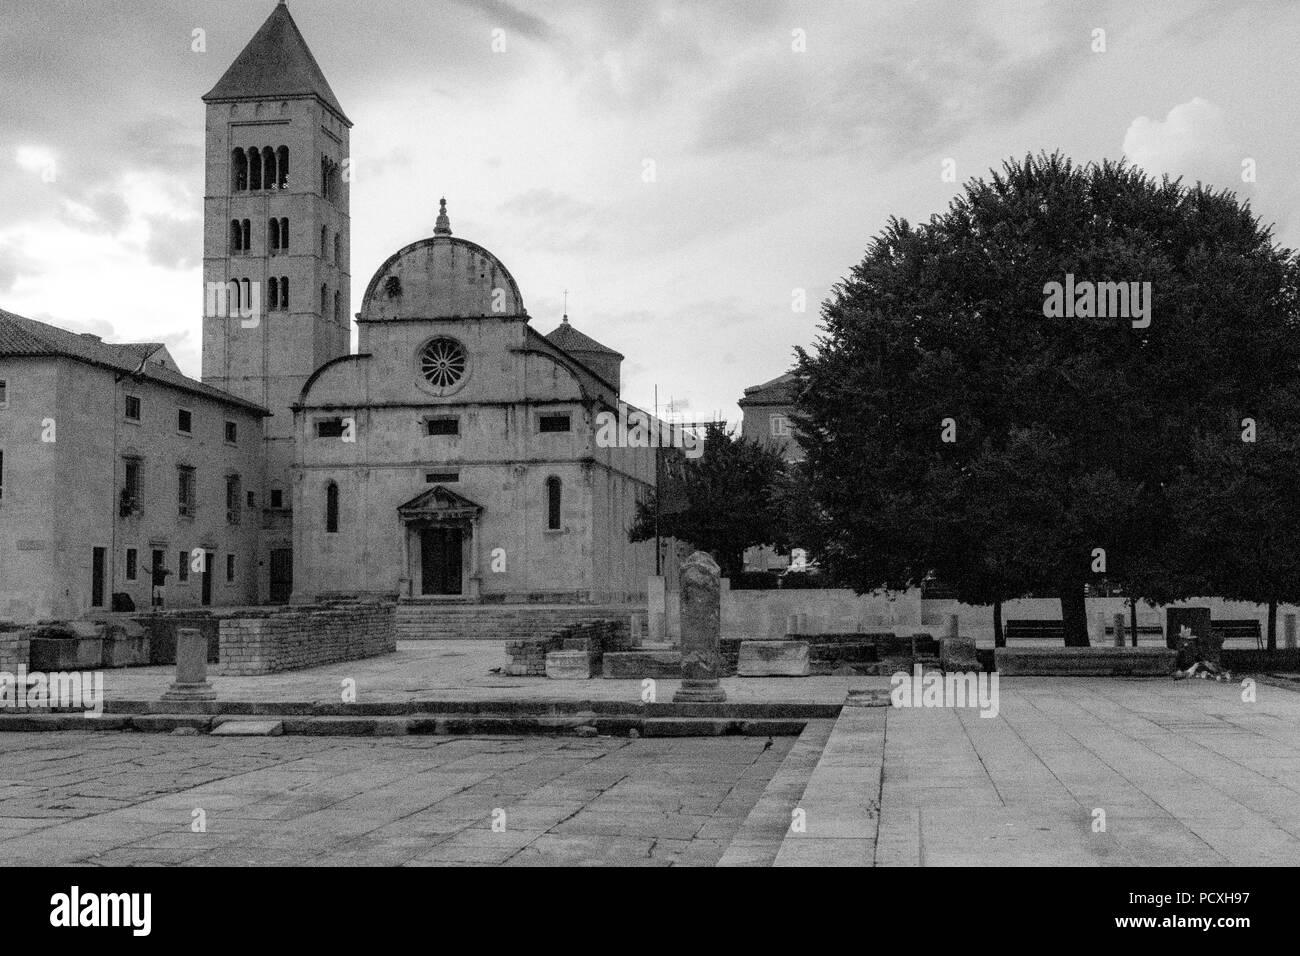 Zadar, Croatia - July 23, 2018: Benedictine monastery of Saint Mary in Zadar old town - Stock Image